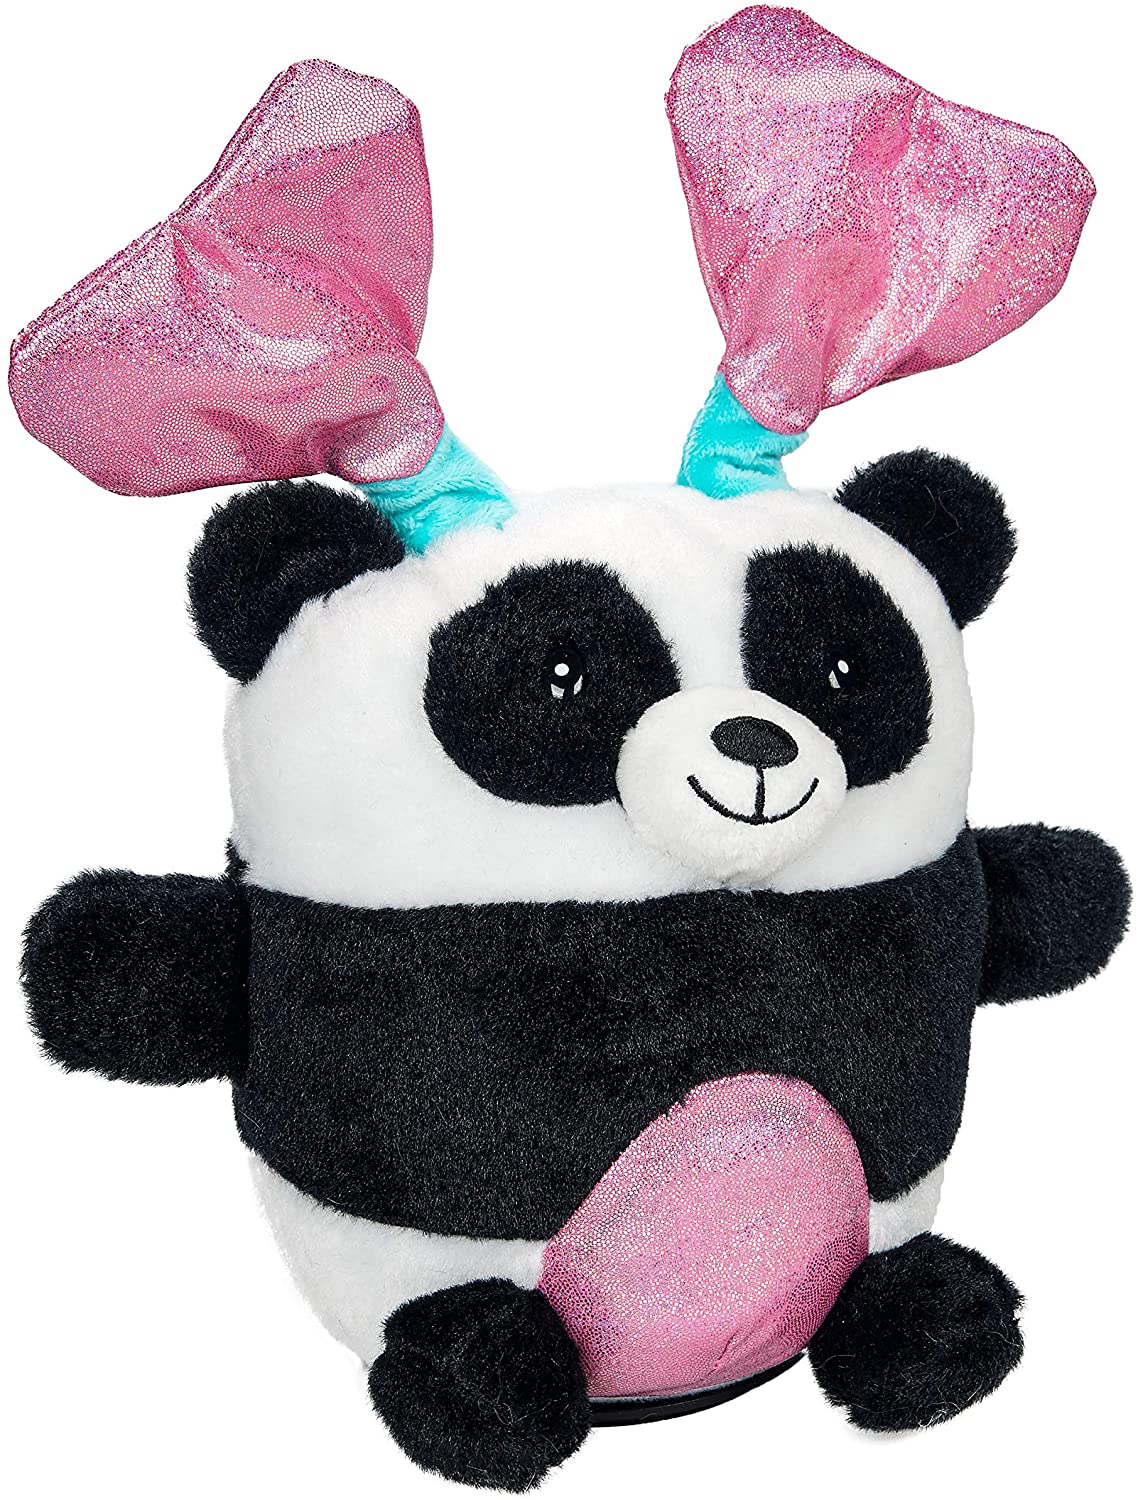 Valentines Panda Bear Animated Plush - Sings and Spins to Baby - Musical Spinning